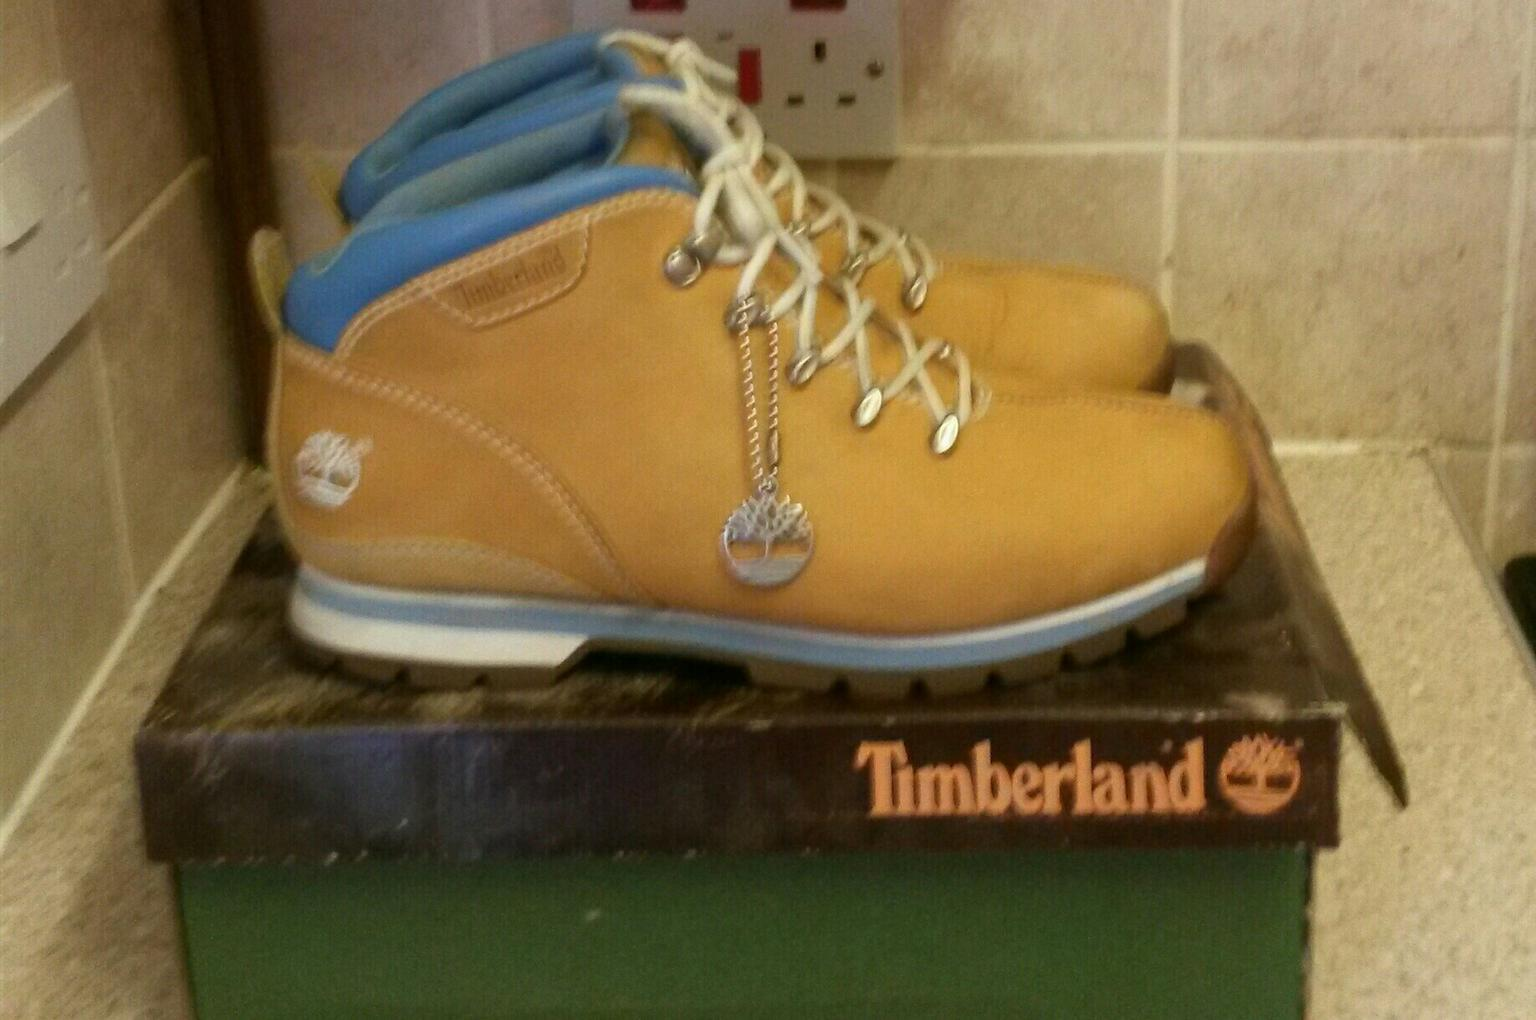 Mens genuine timberland boots.UK size 8 in B19 Birmingham for £40 for sale  - Shpock 3dea78e8174d